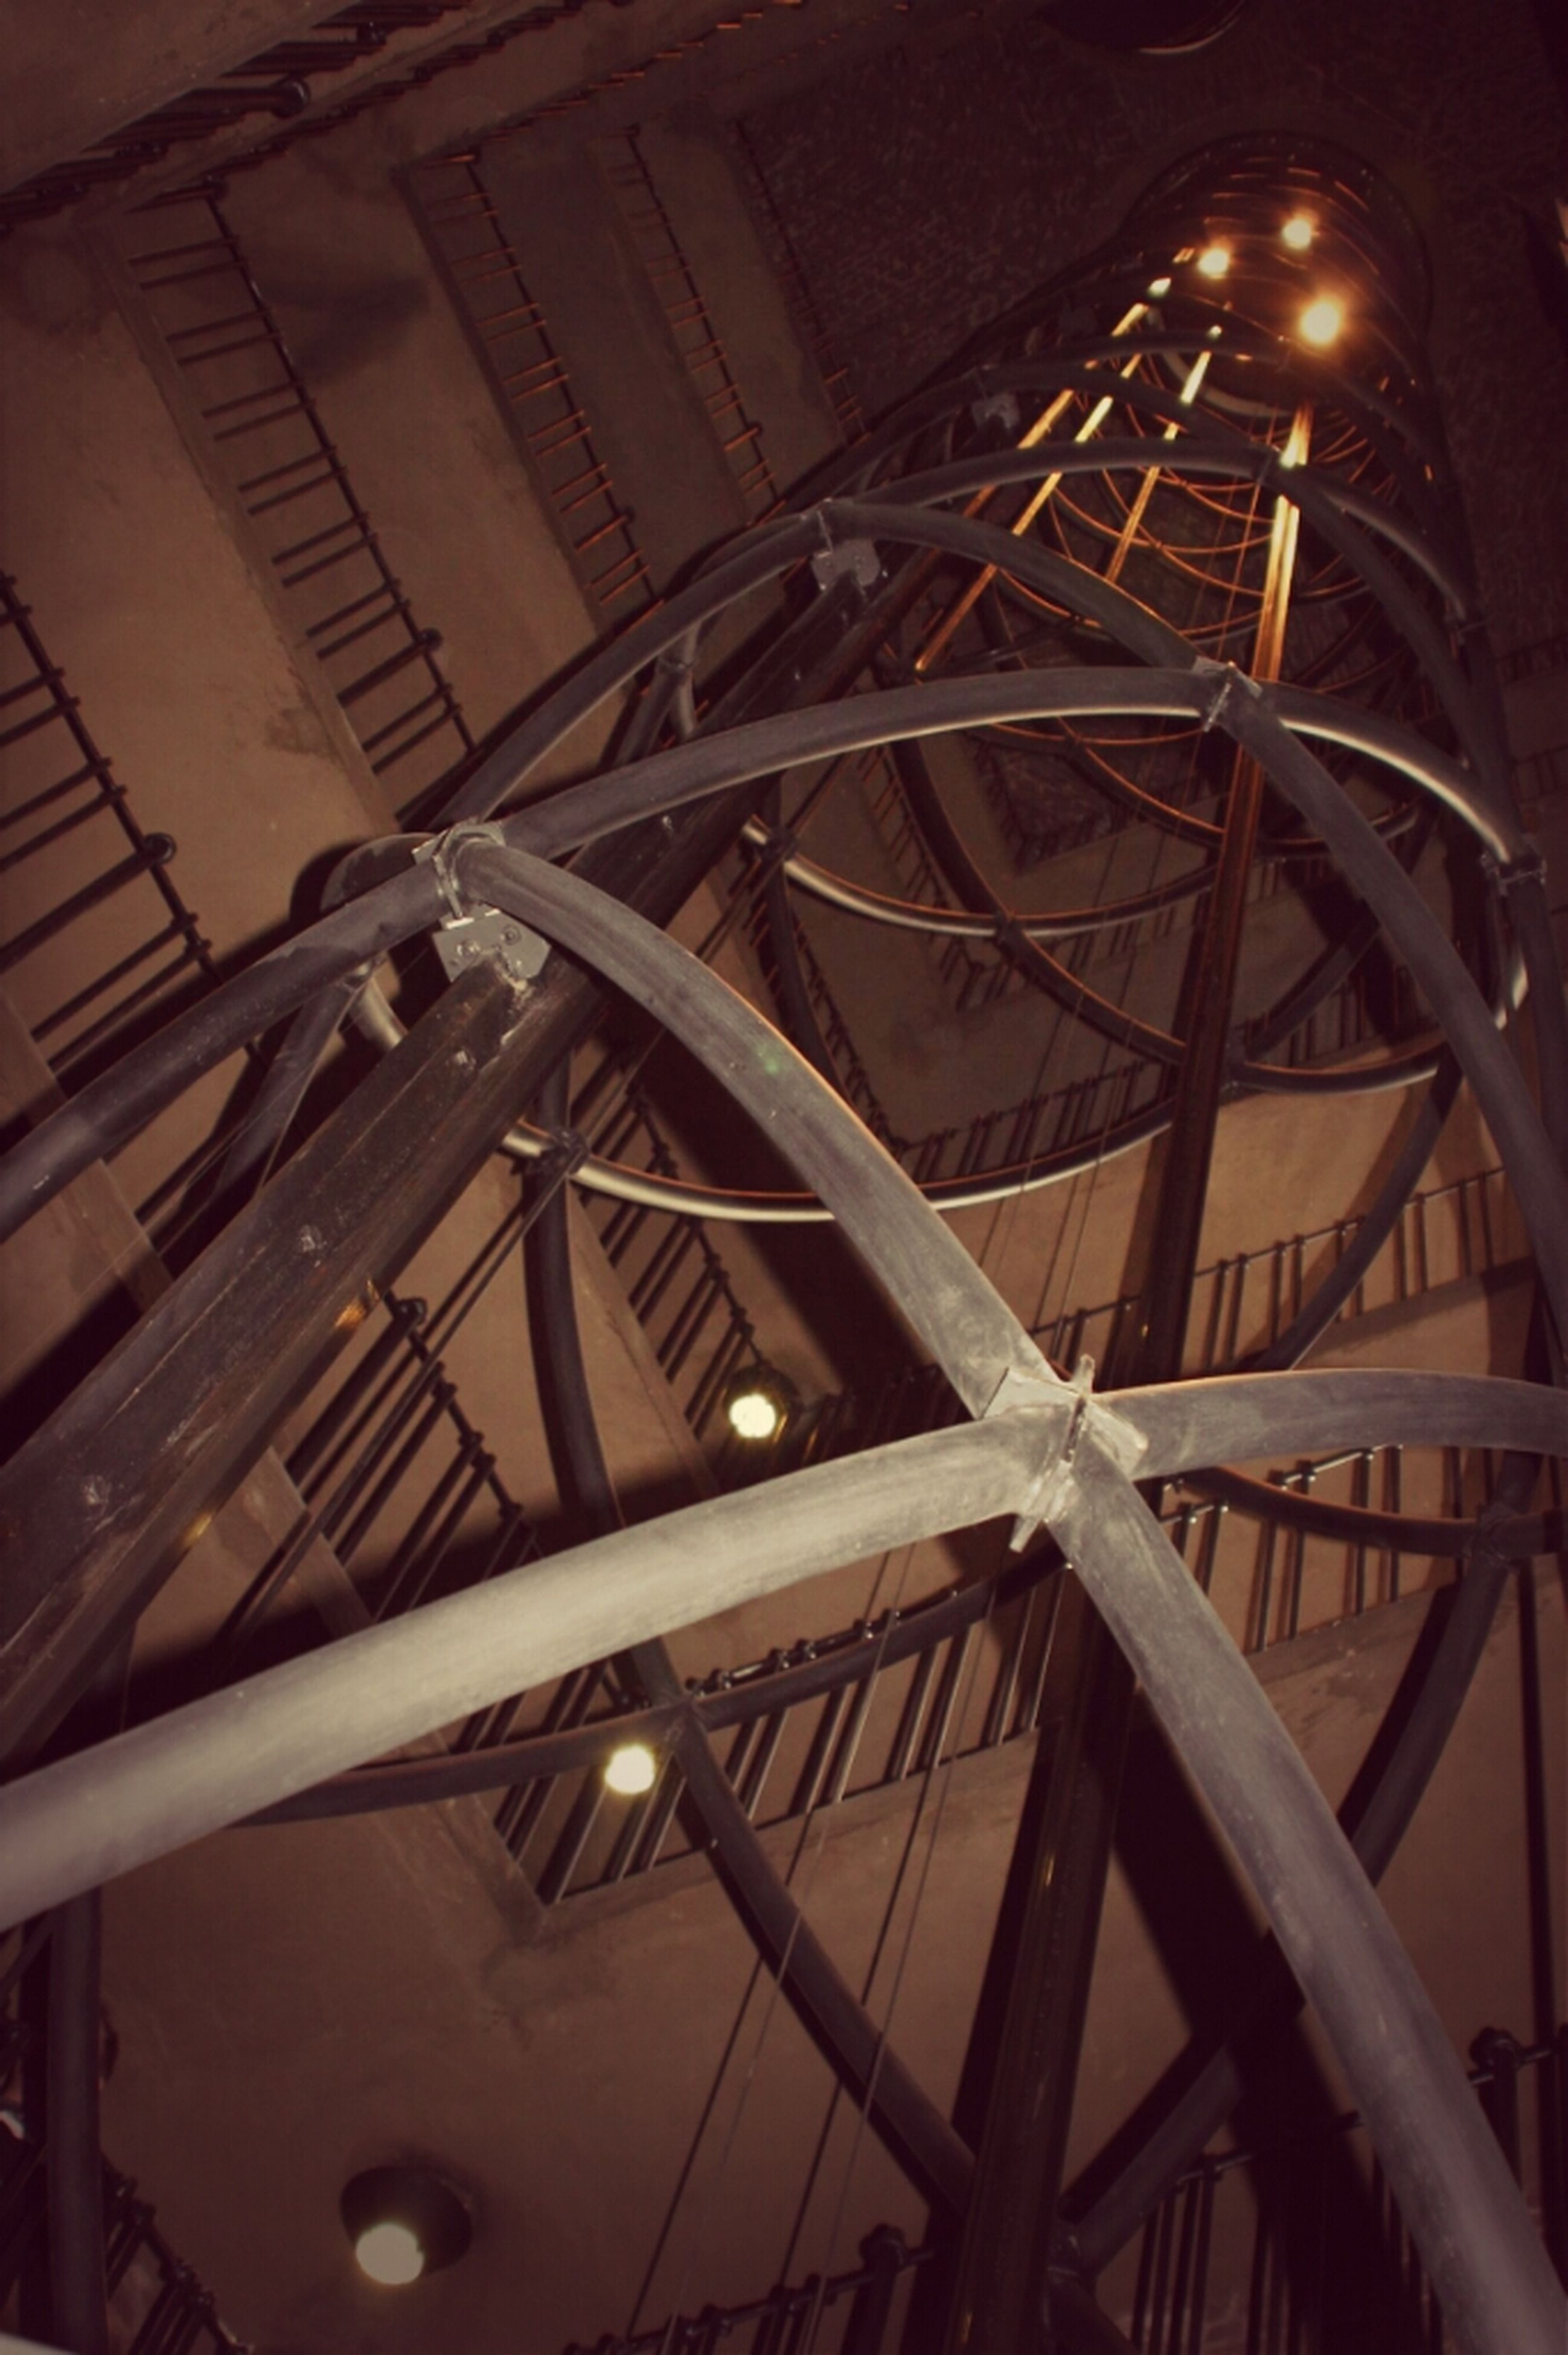 low angle view, indoors, metal, built structure, night, architecture, illuminated, metallic, transportation, no people, engineering, ceiling, circle, railing, wheel, high angle view, pattern, geometric shape, bridge - man made structure